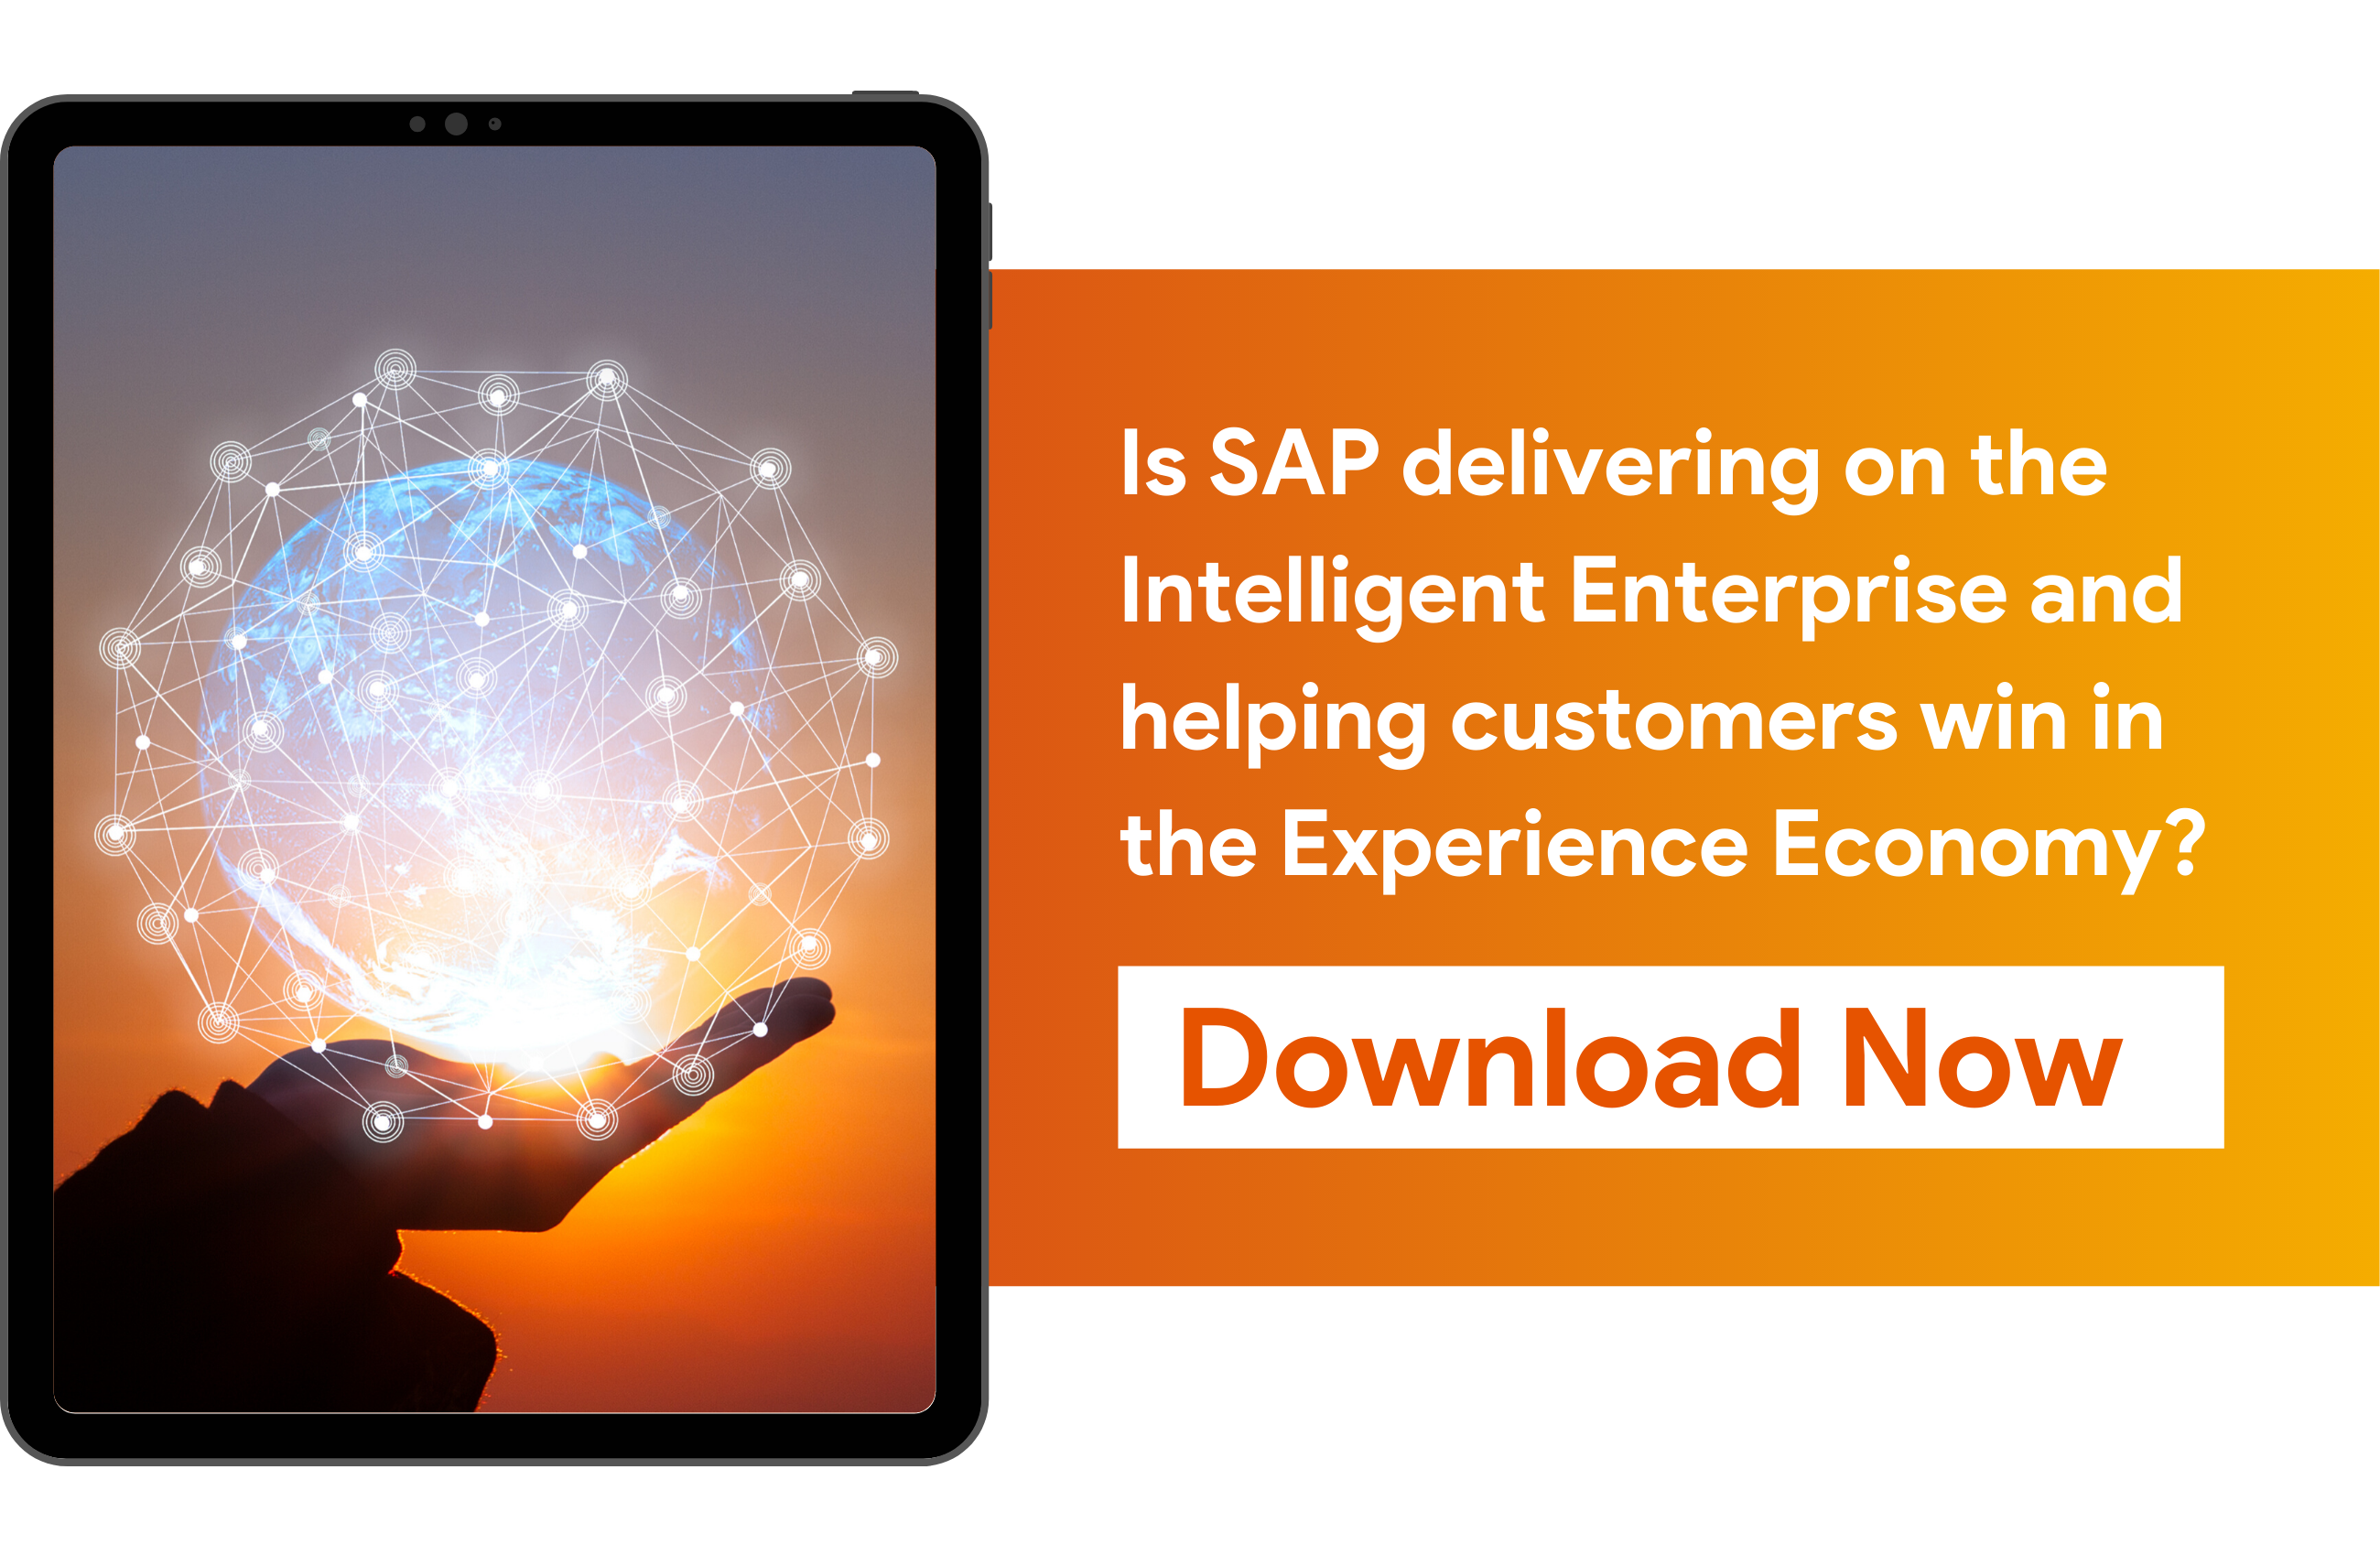 eBook - How is SAP delivering on the Intelligent Enterprise and helping customers win in the Experience Economy?